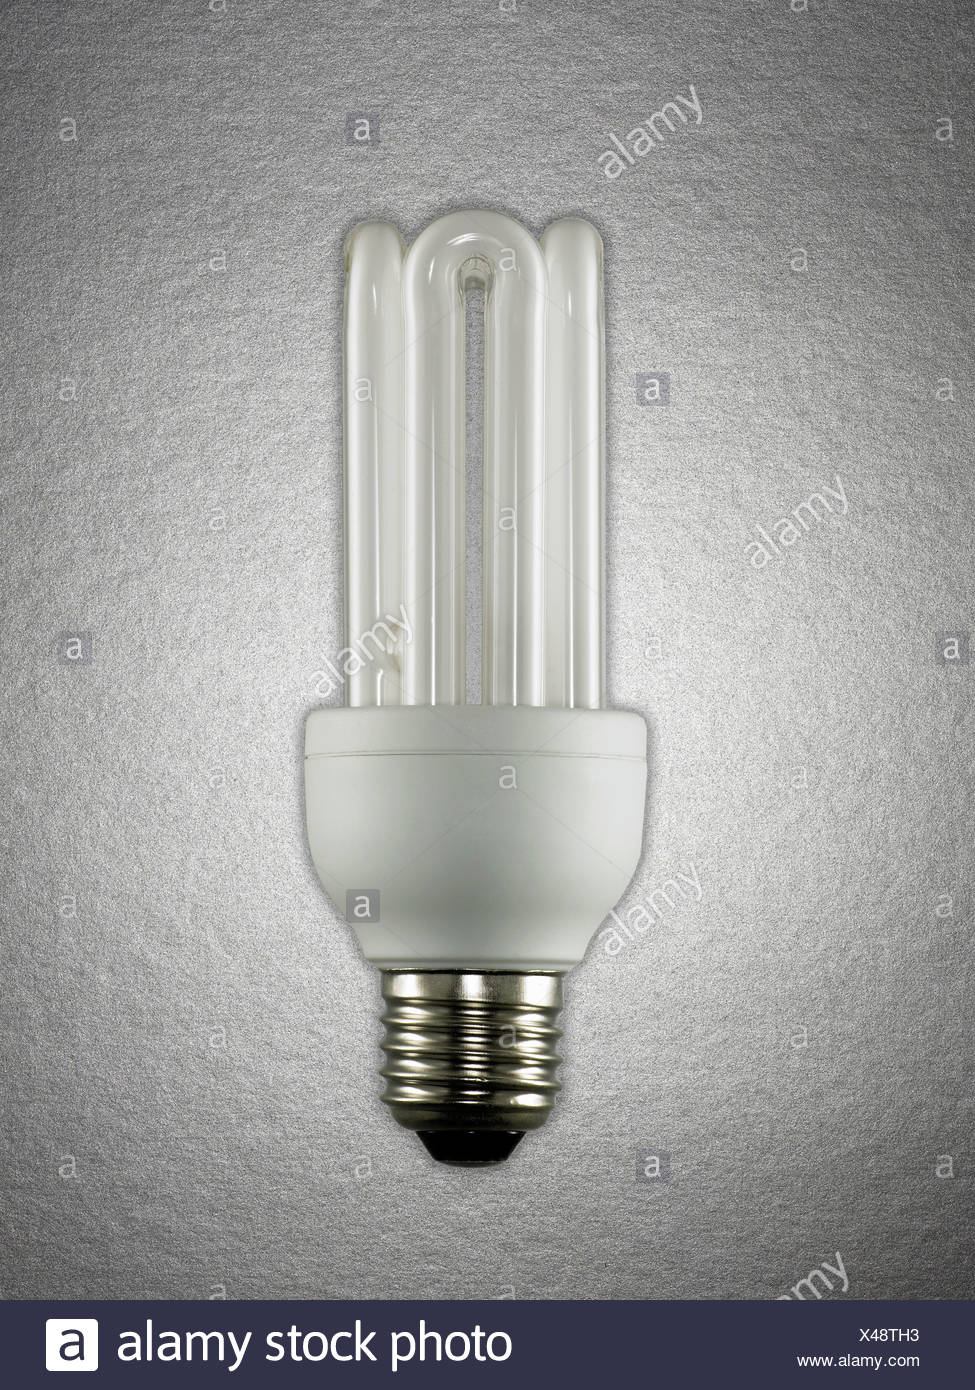 Energy efficient lightbulb - Stock Image